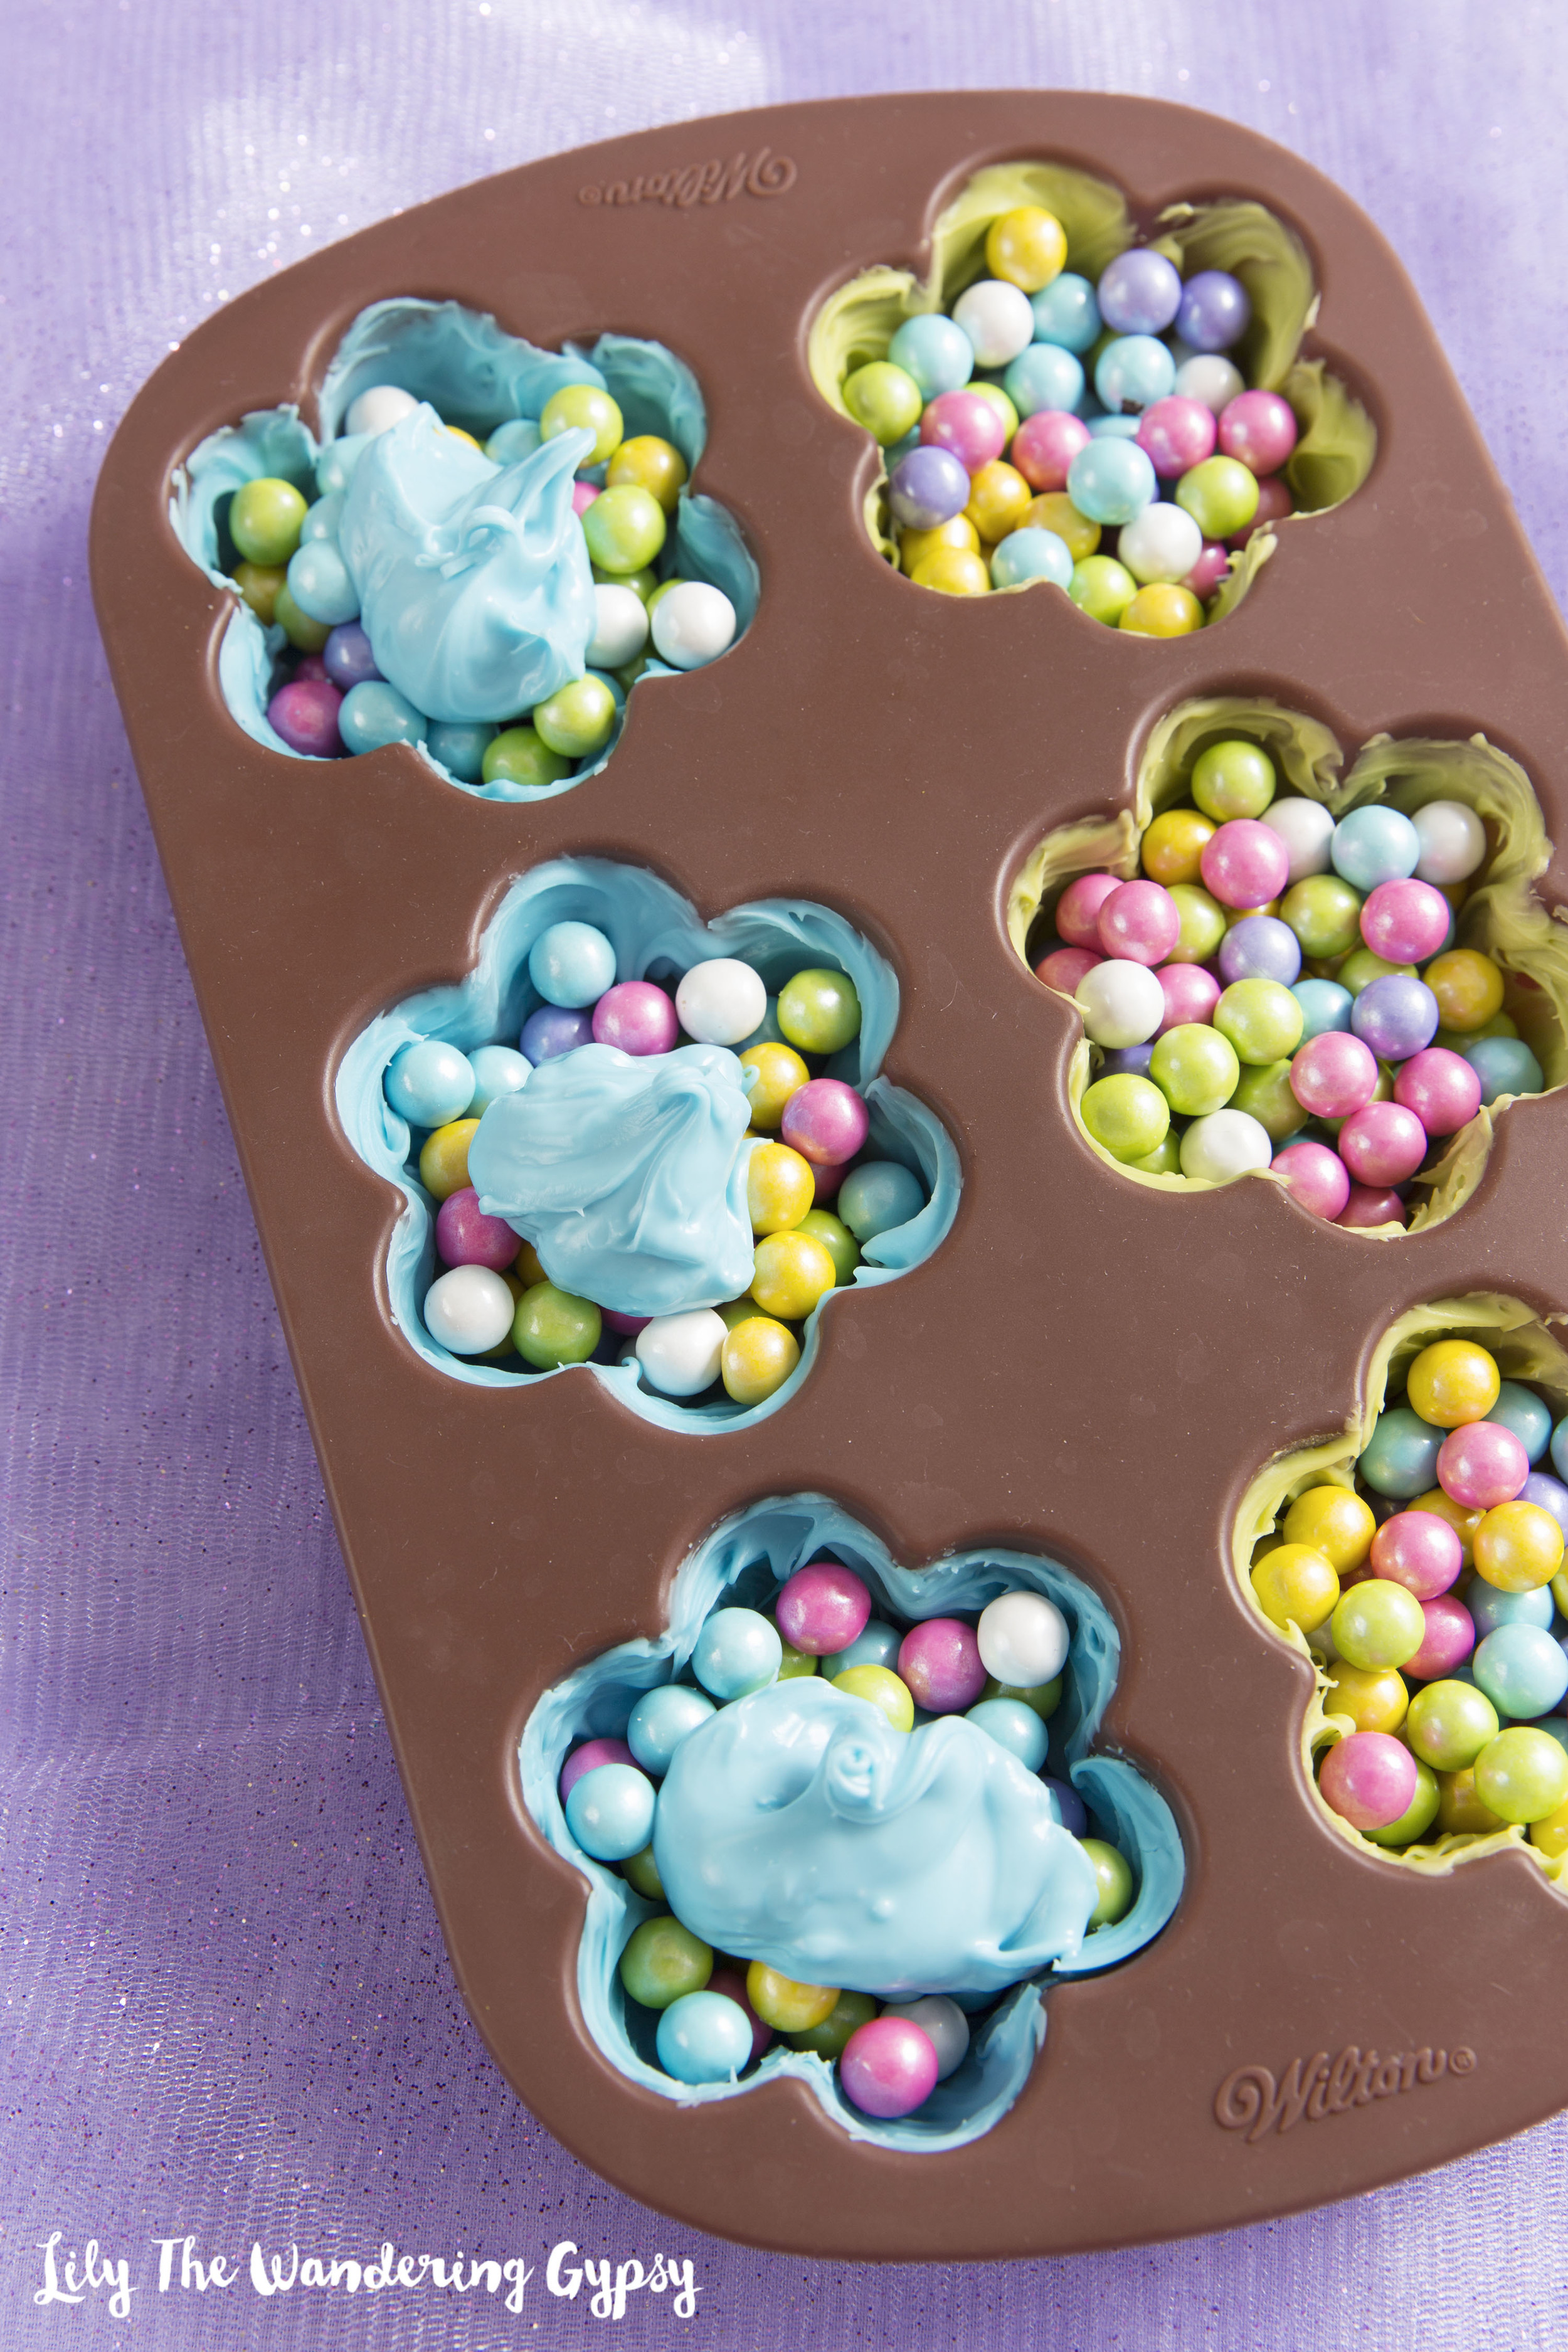 5.) Add a dollop of candy melts on top of your fillers candies, and use the  paintbrush  to smooth the dollop out, and to create a seal, so the candies stay inside the melts. Throw them back into the freezer, and wait about 30 minutes (or longer), so that everything hardens and seals.